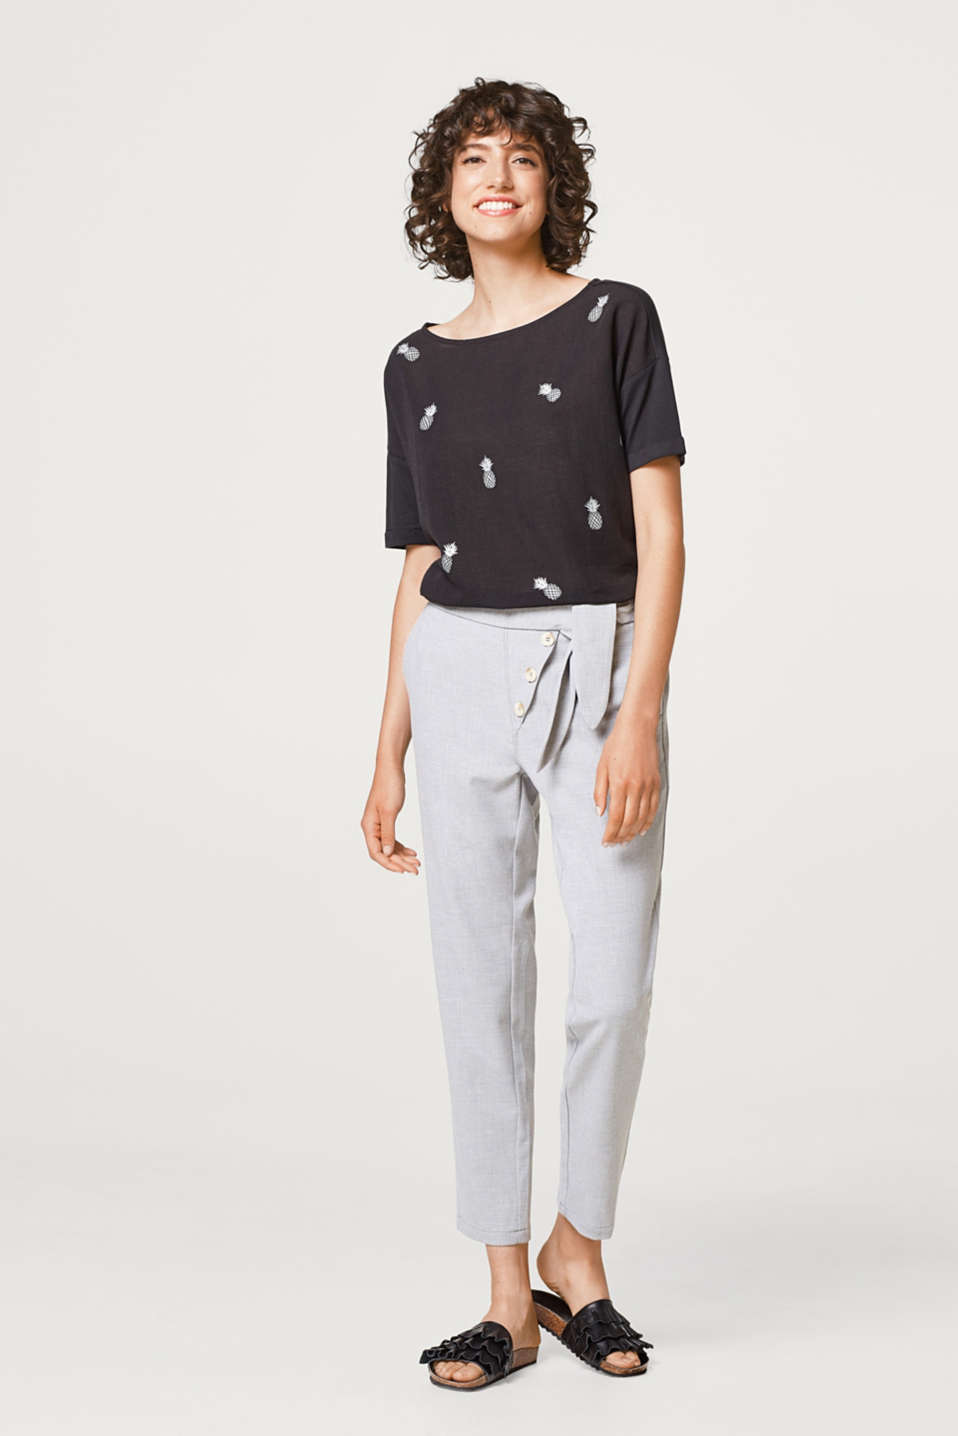 Softly draped T-shirt with a print